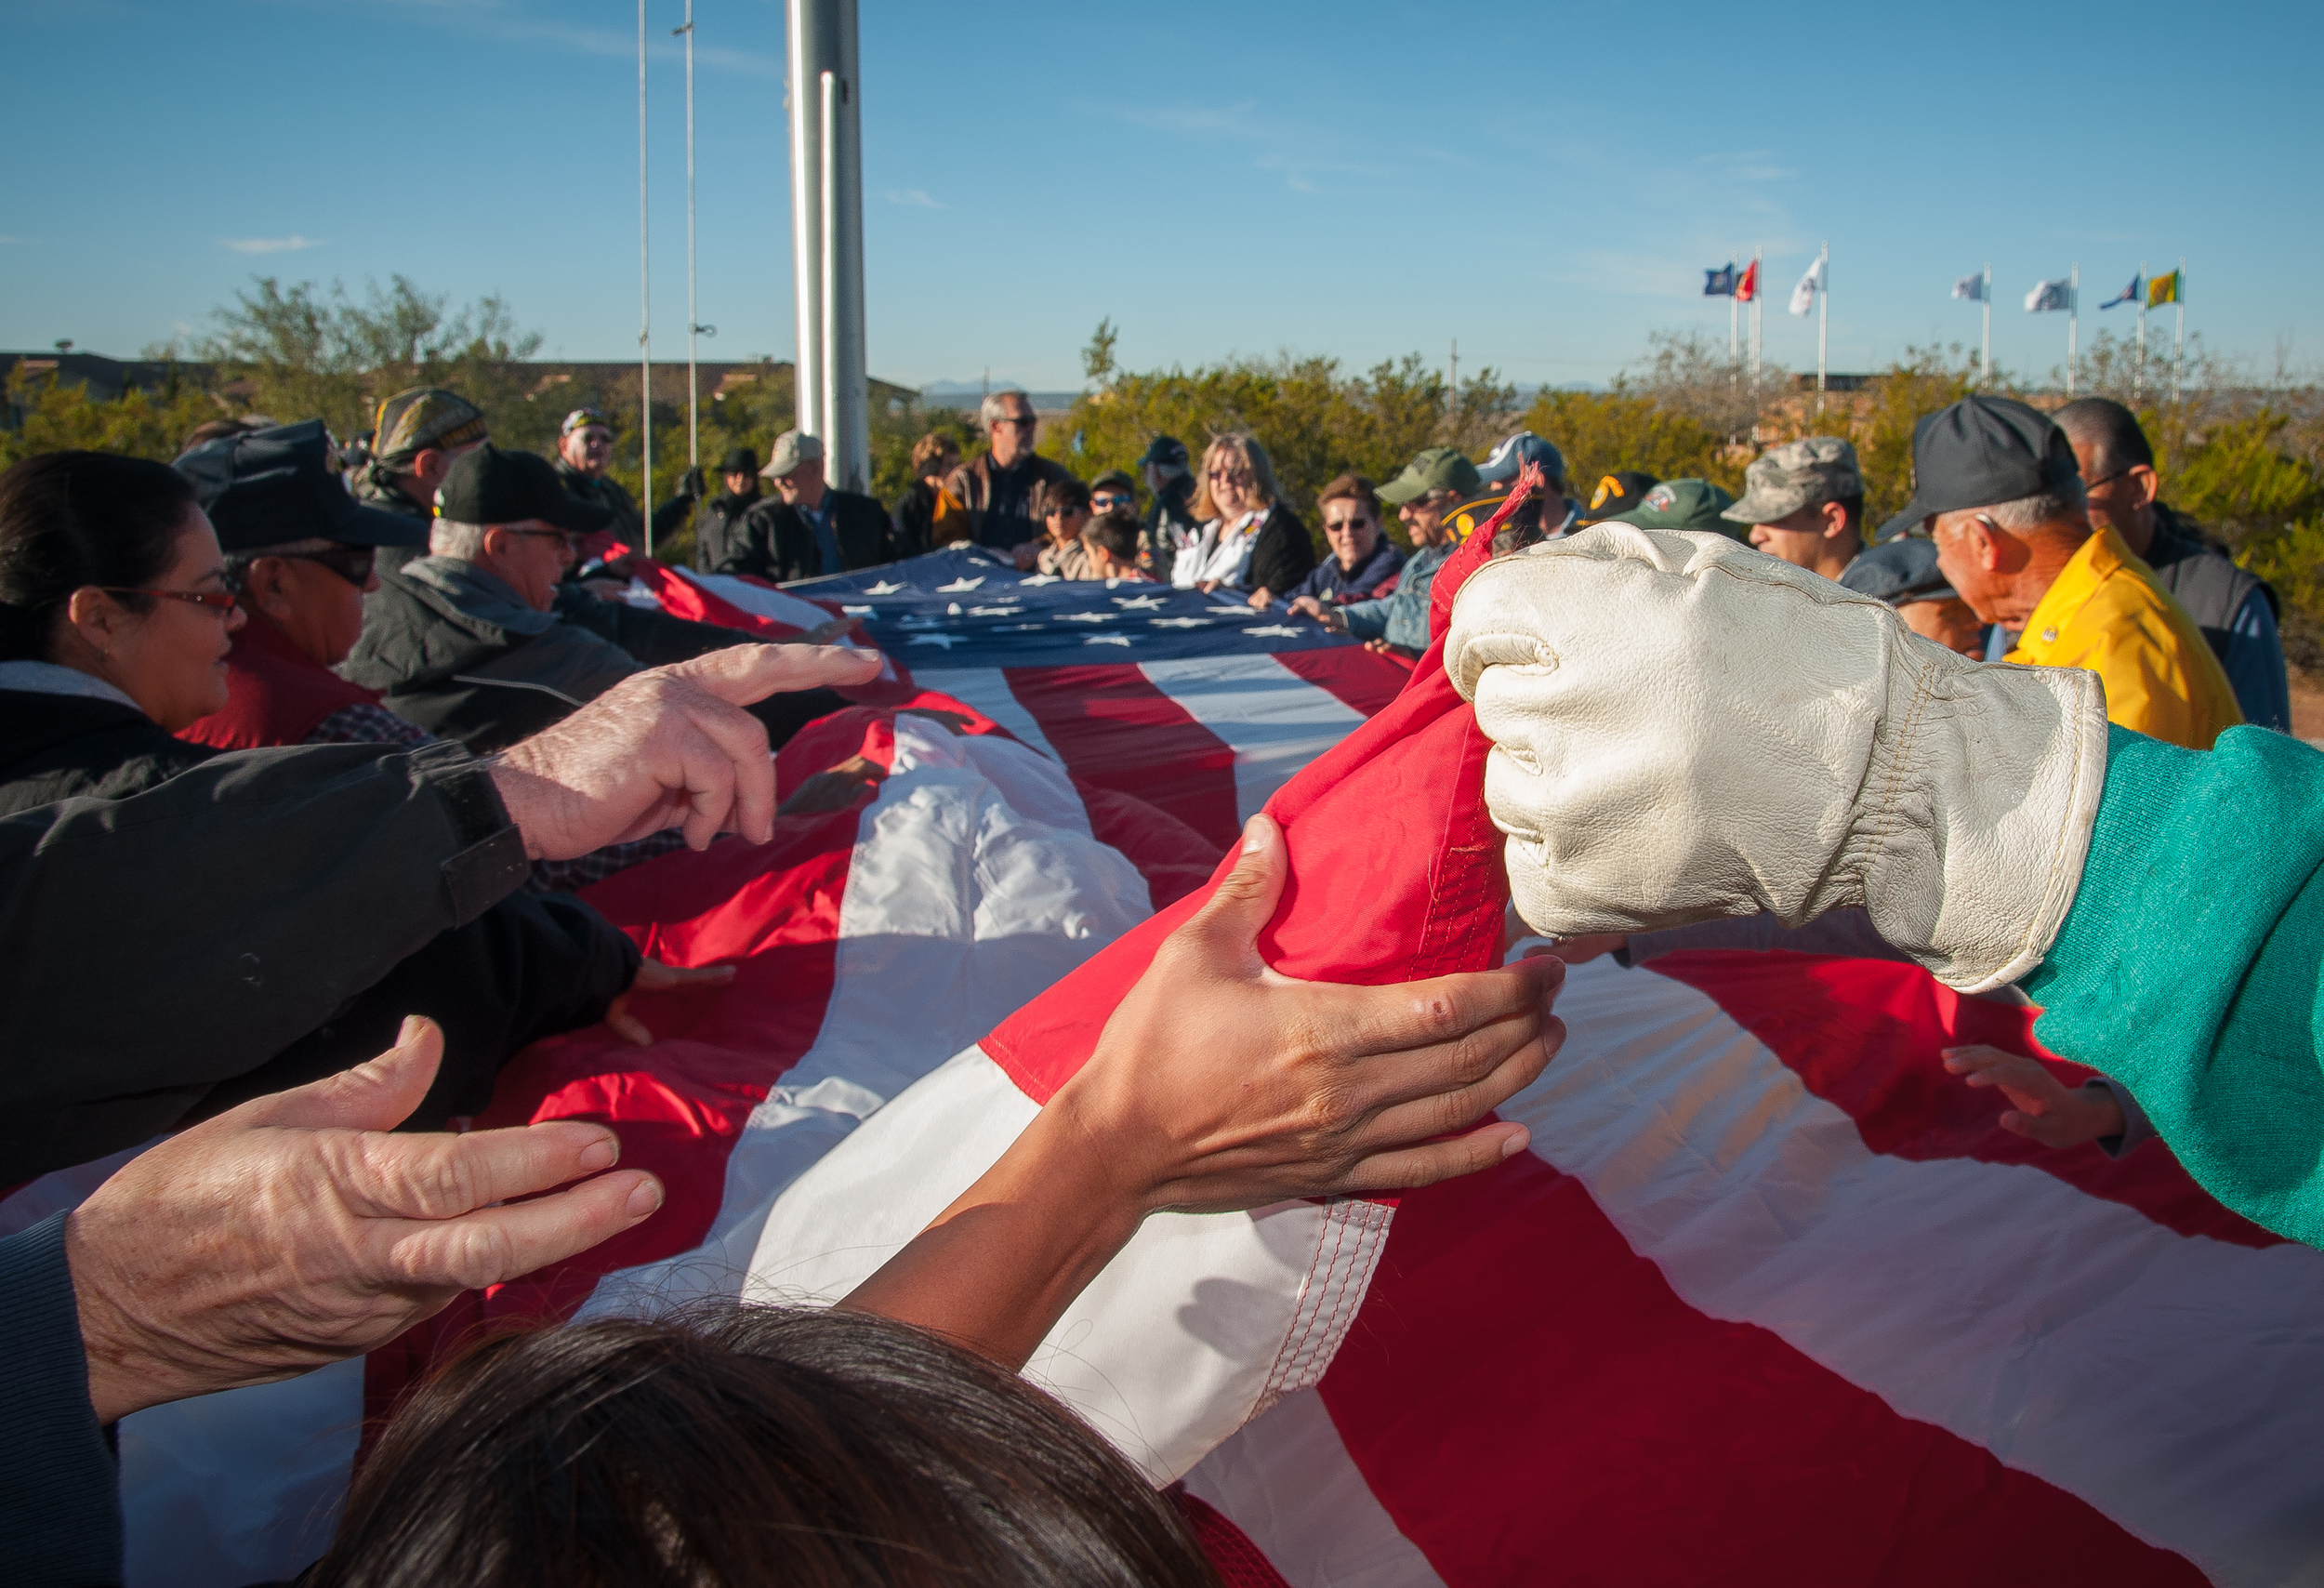 Veterans and visitors to Veterans Memorial Park on Veterans Day unfurl Las Cruces' garrison flag prior to it being raised.